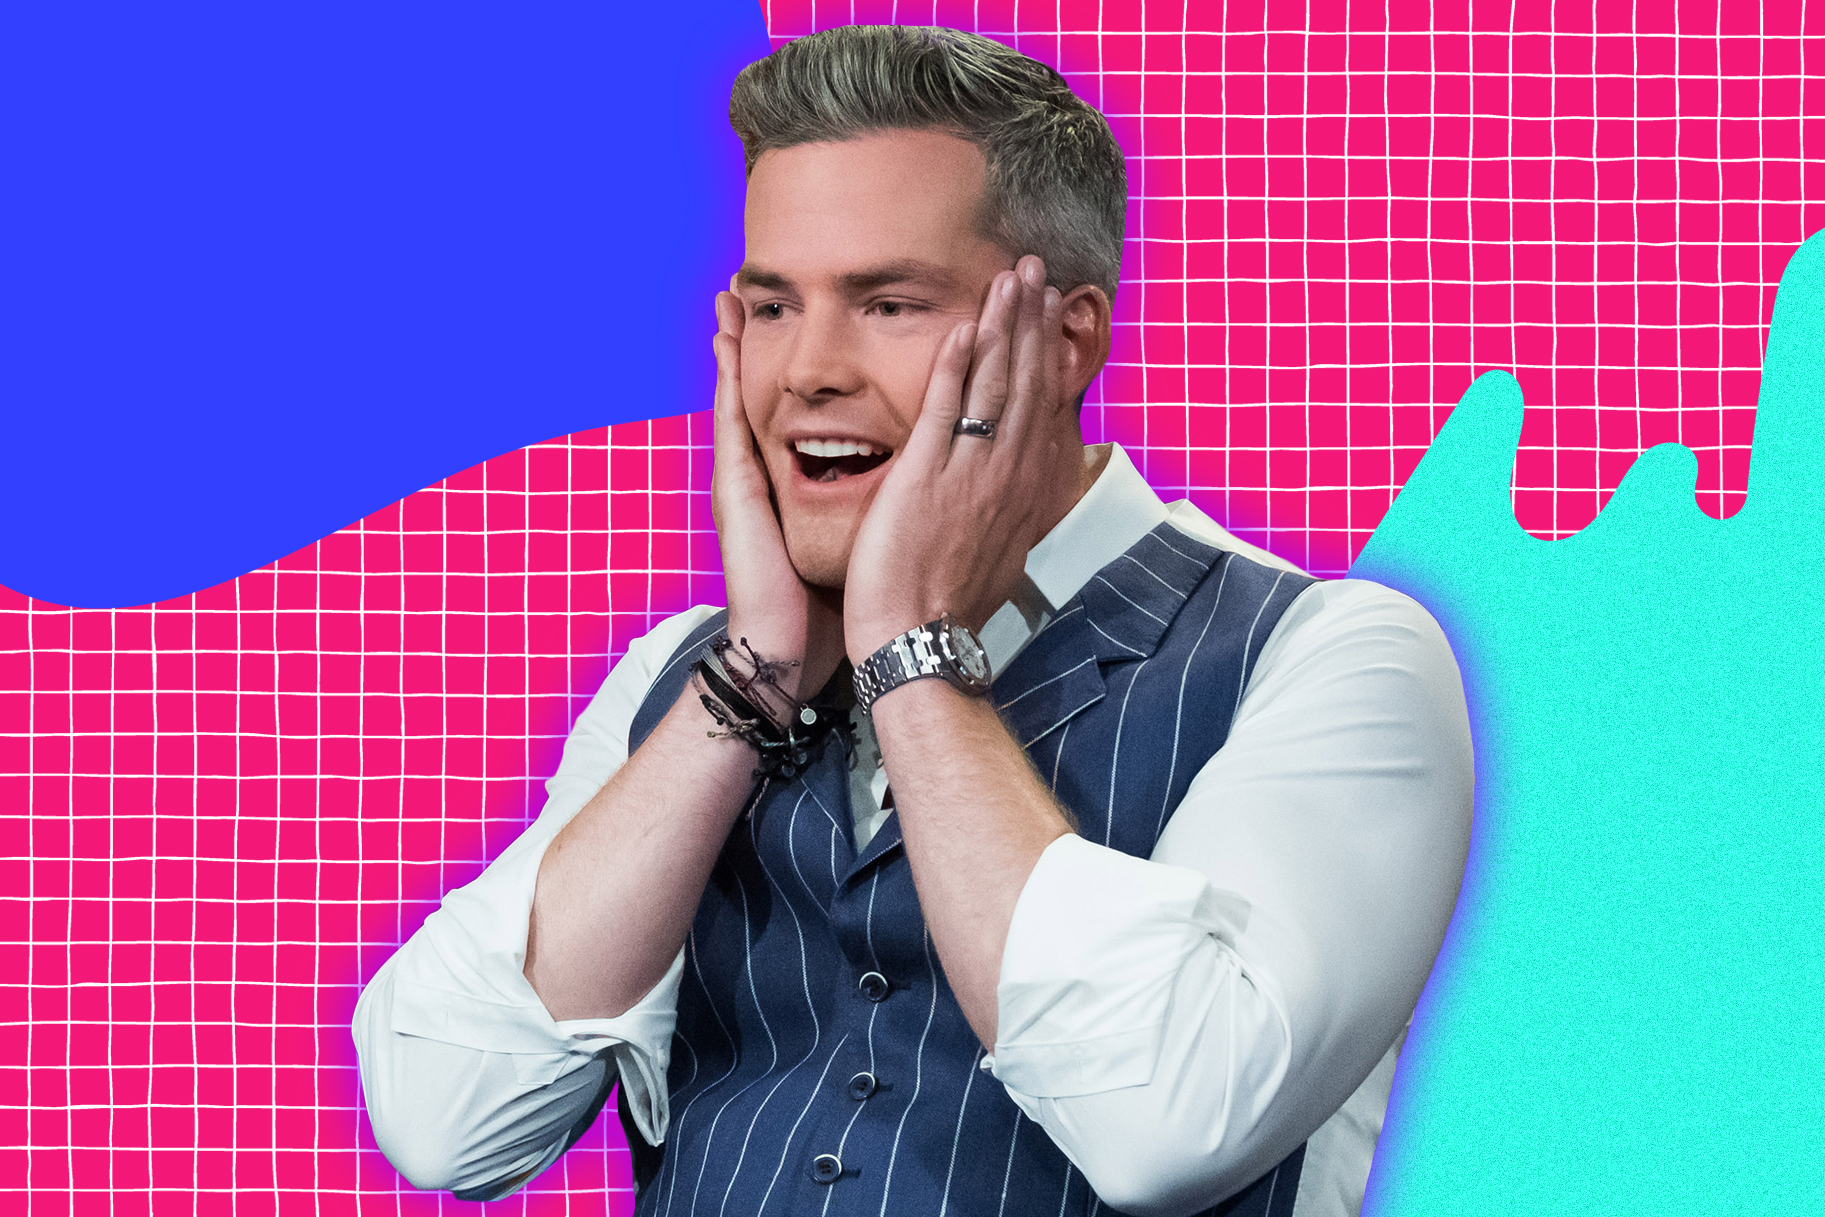 Ryan Serhant Mdlny Hand Model